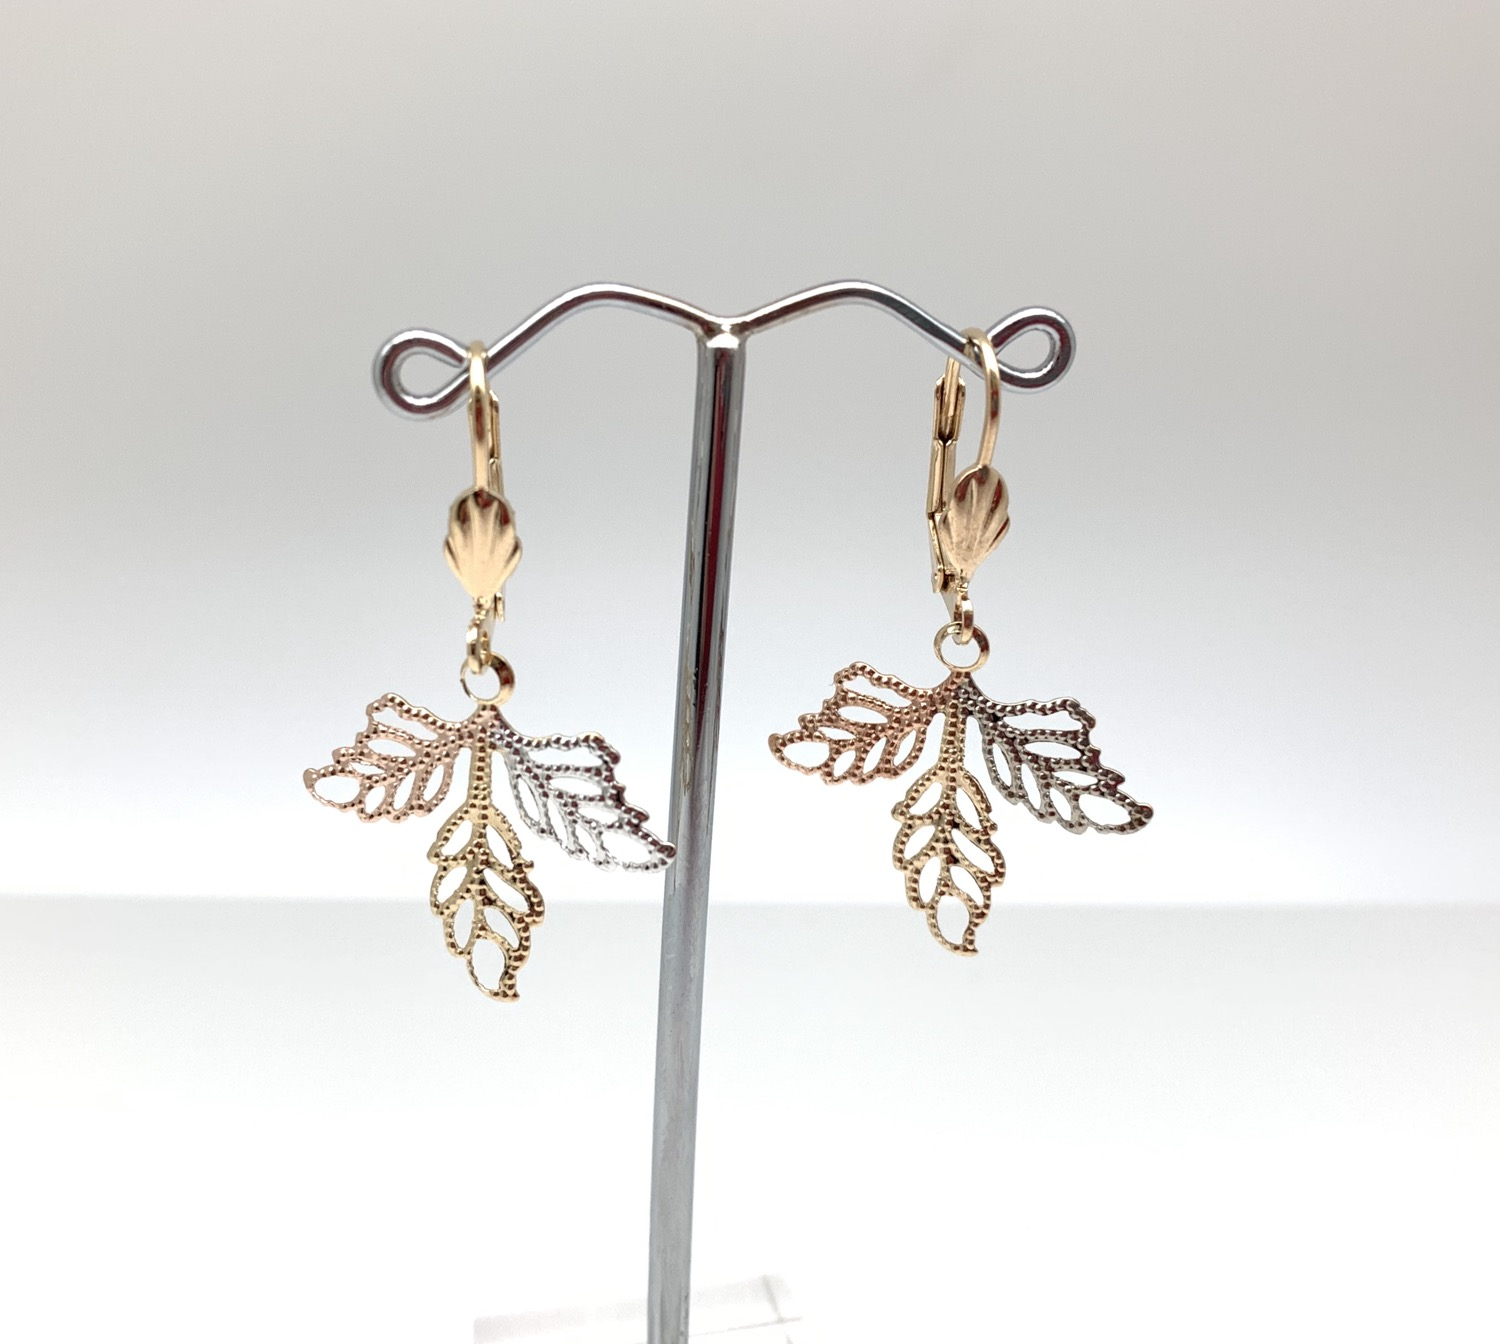 Thumbnail: H131 Tricolor Leaf Earrings